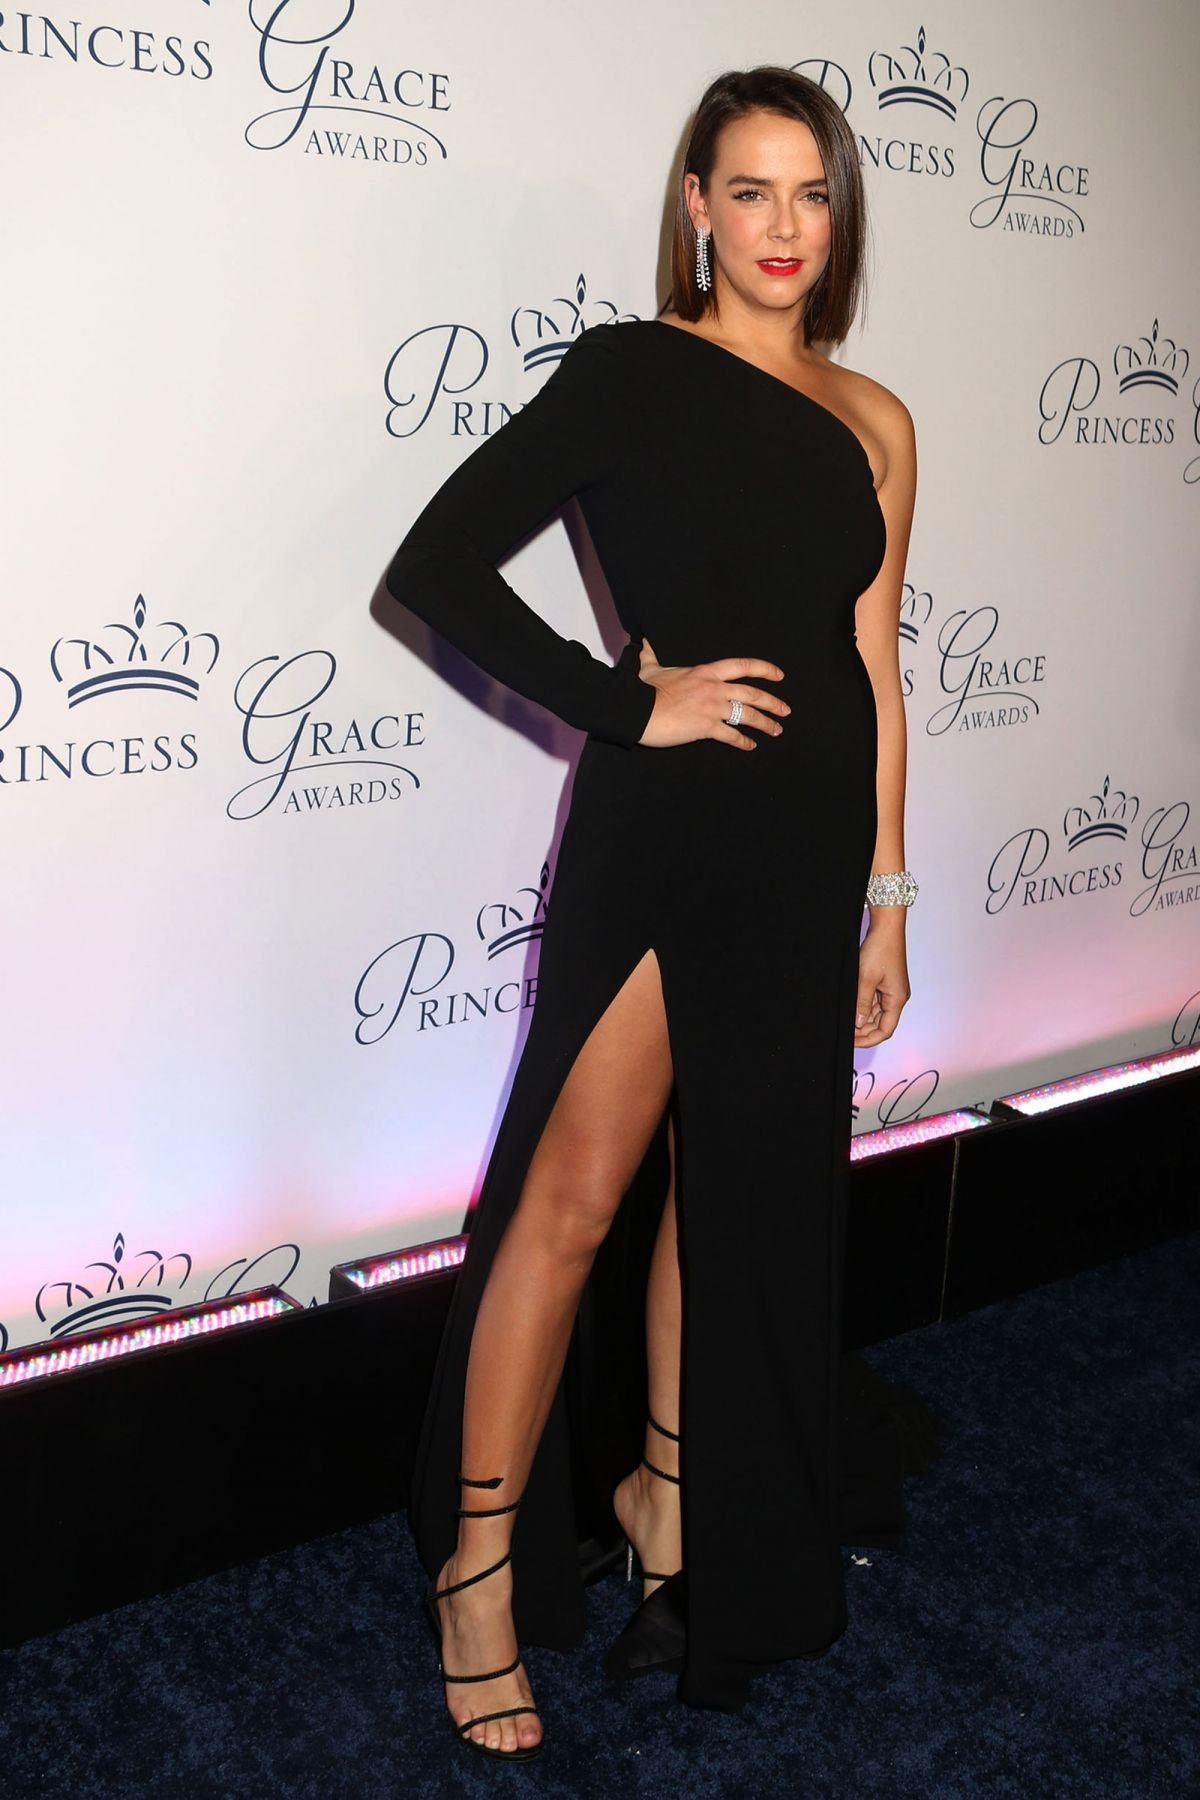 Princess Grace Gala Award